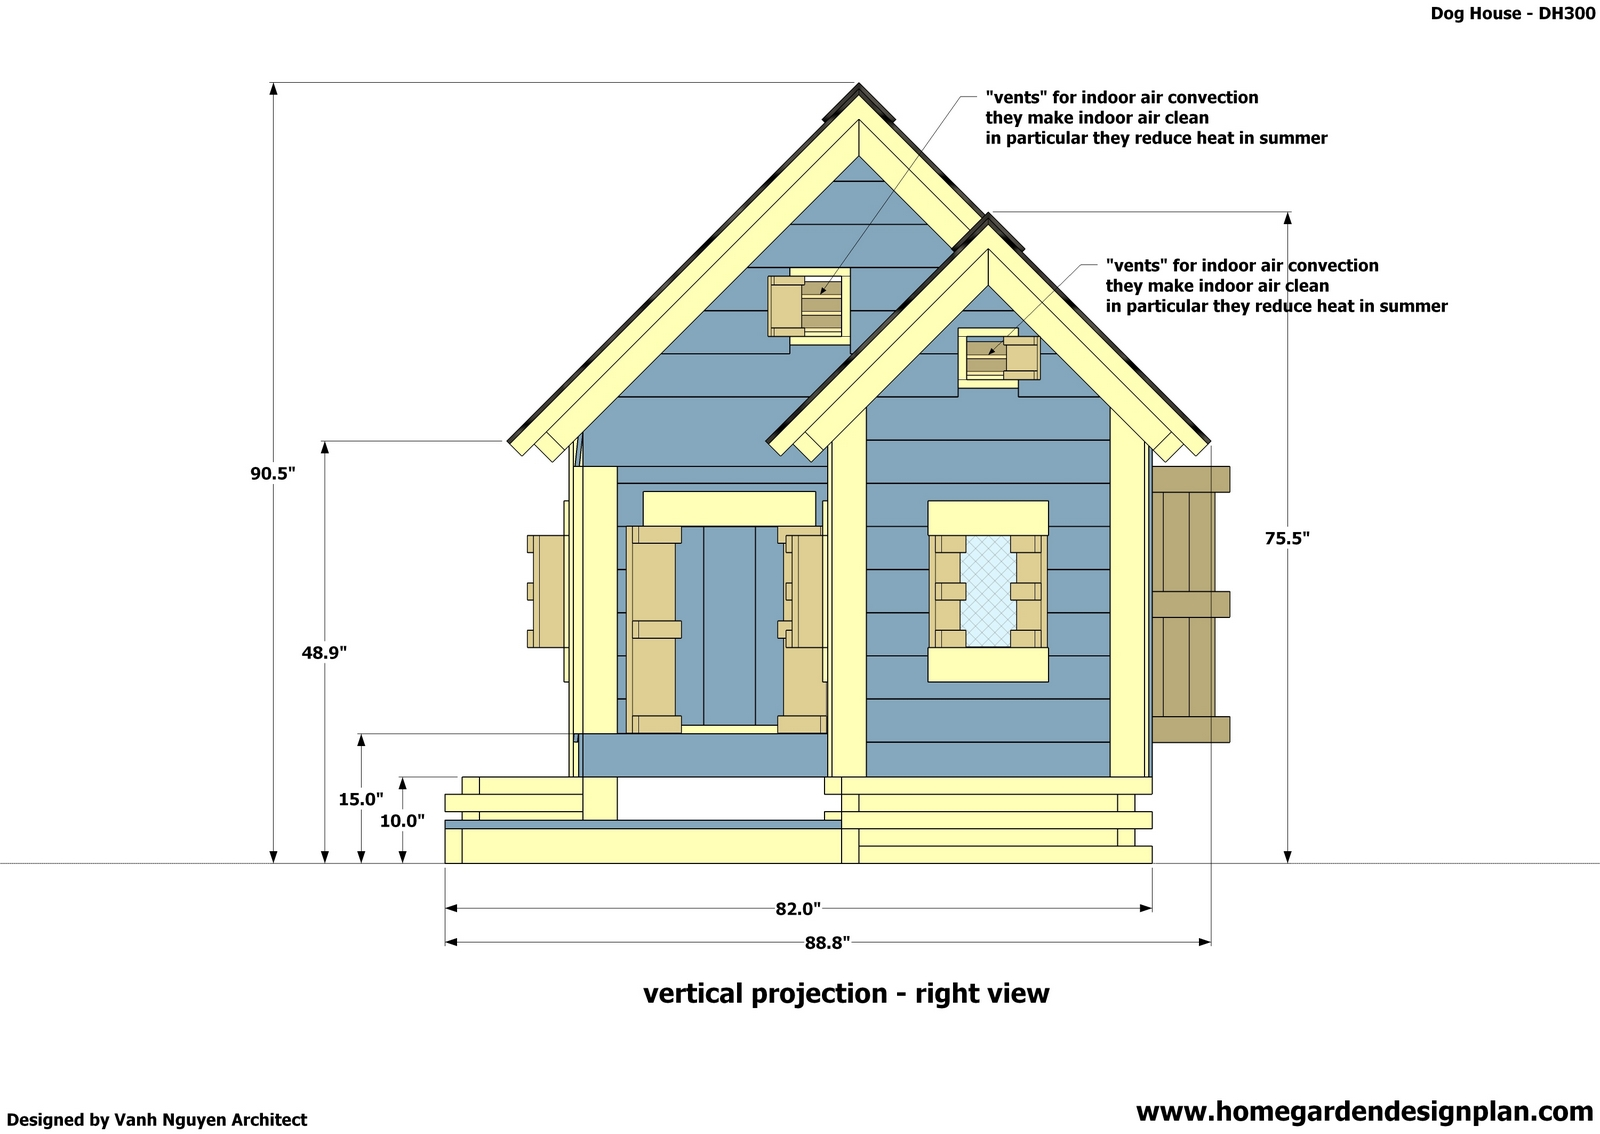 Home garden plans dh300 dog house plans free how to House blueprints free